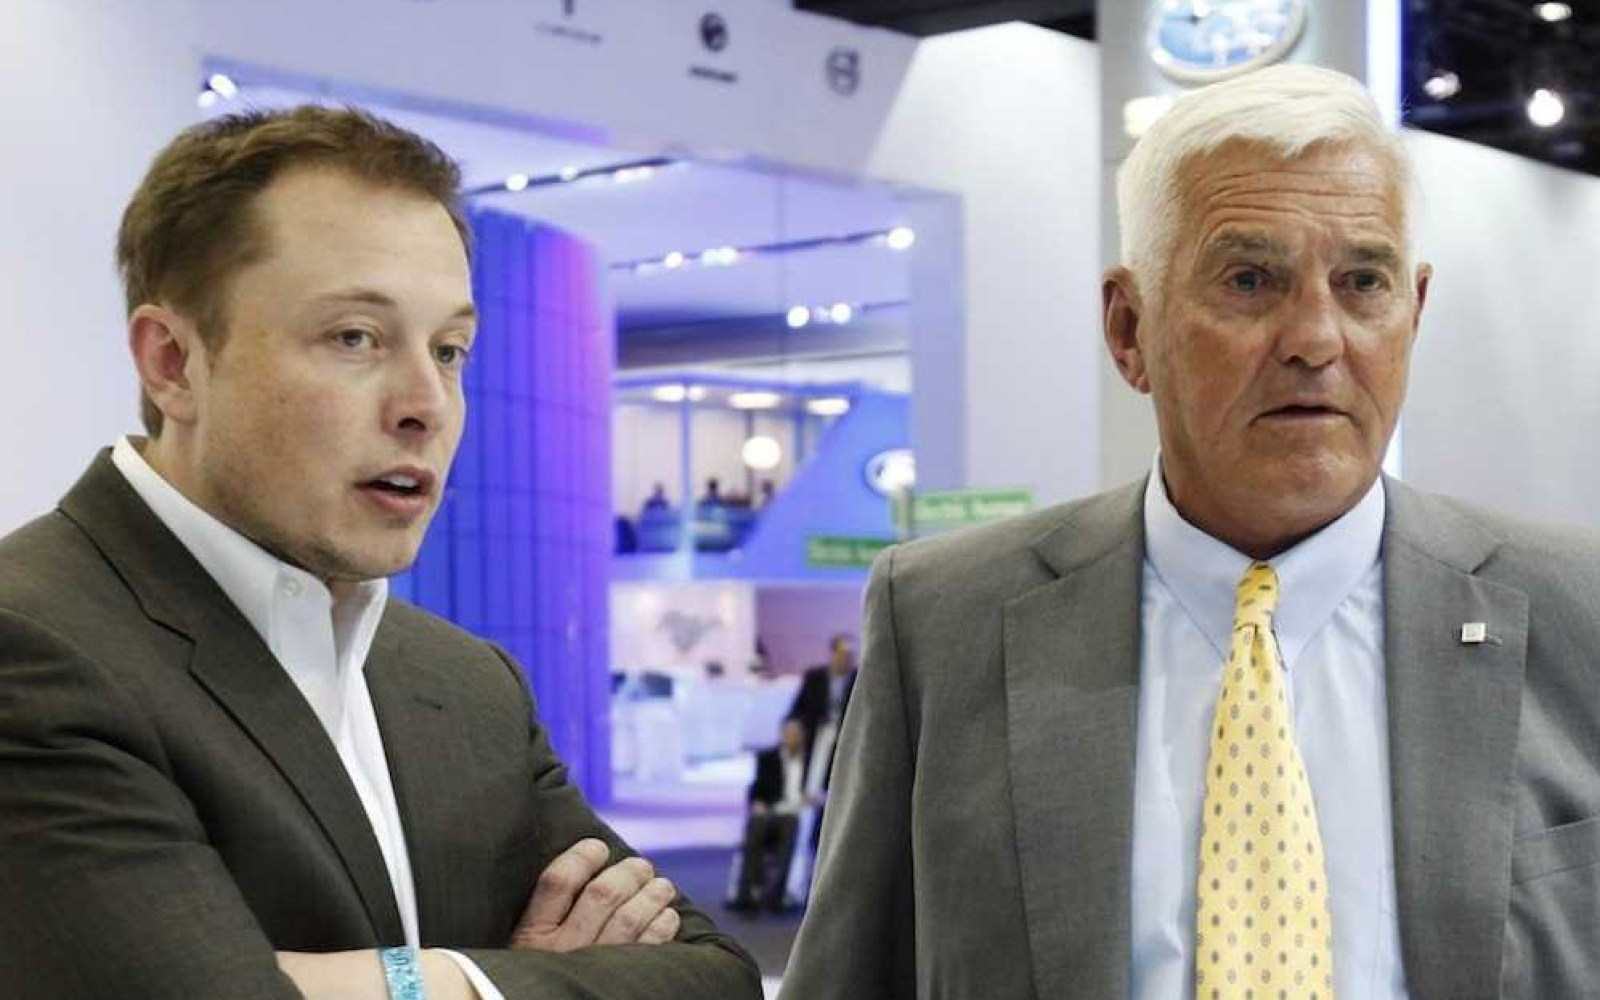 Bob Lutz compares Tesla to socialism after GM took $11B from taxpayers under his reign